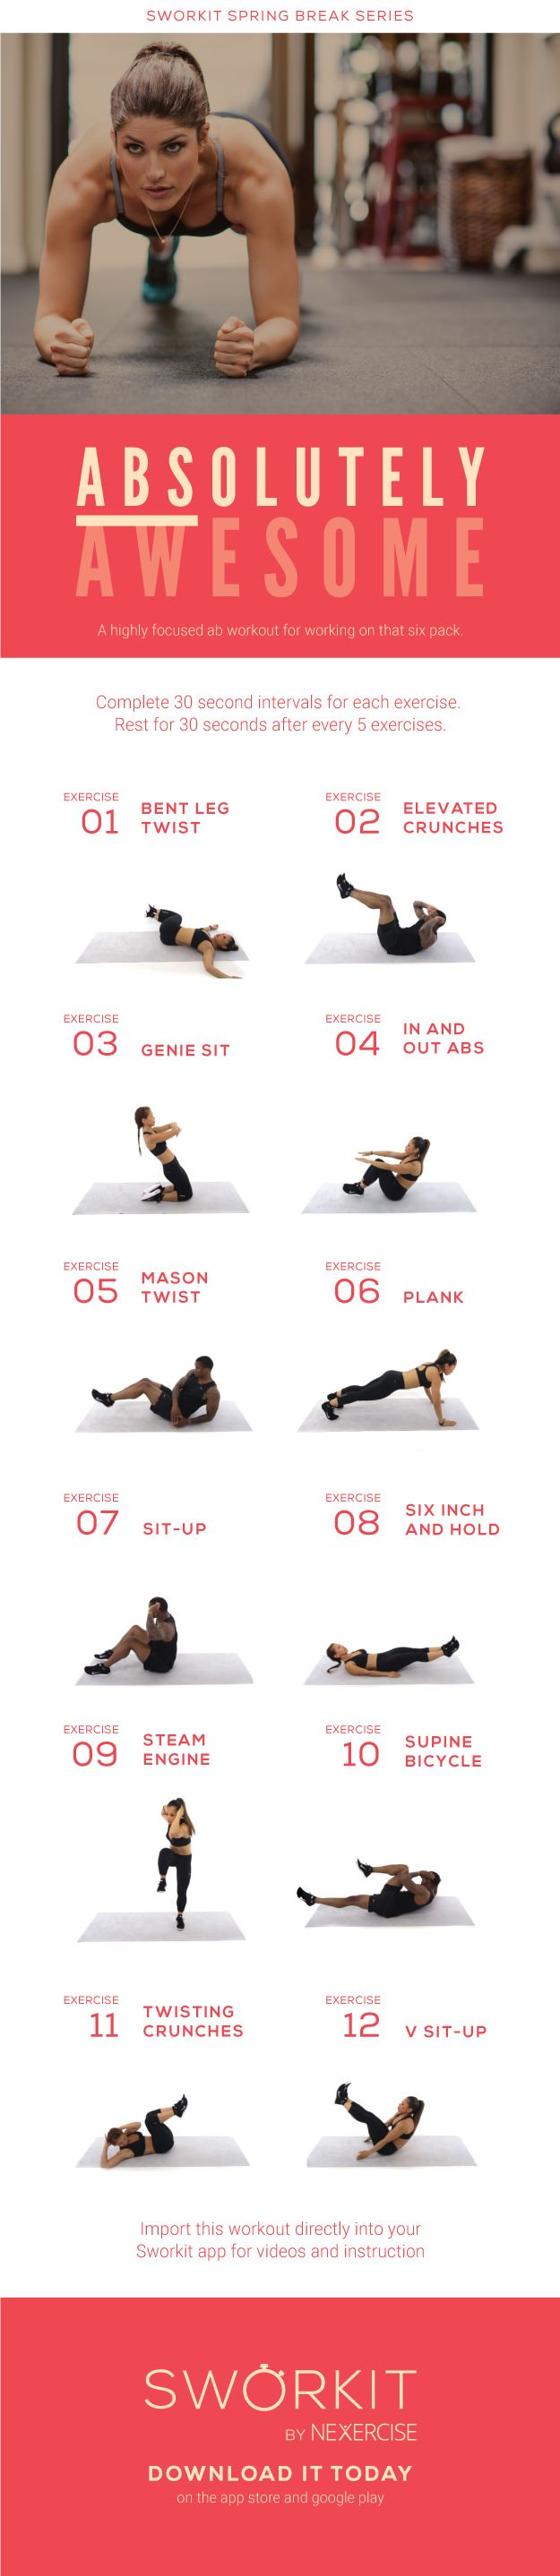 (Abs)olutely awesome. This custom workout is a highly focused ab workout for working on that six pack. We hope you enjoy. Stay on the look out for more great custom workouts by Sworkit!